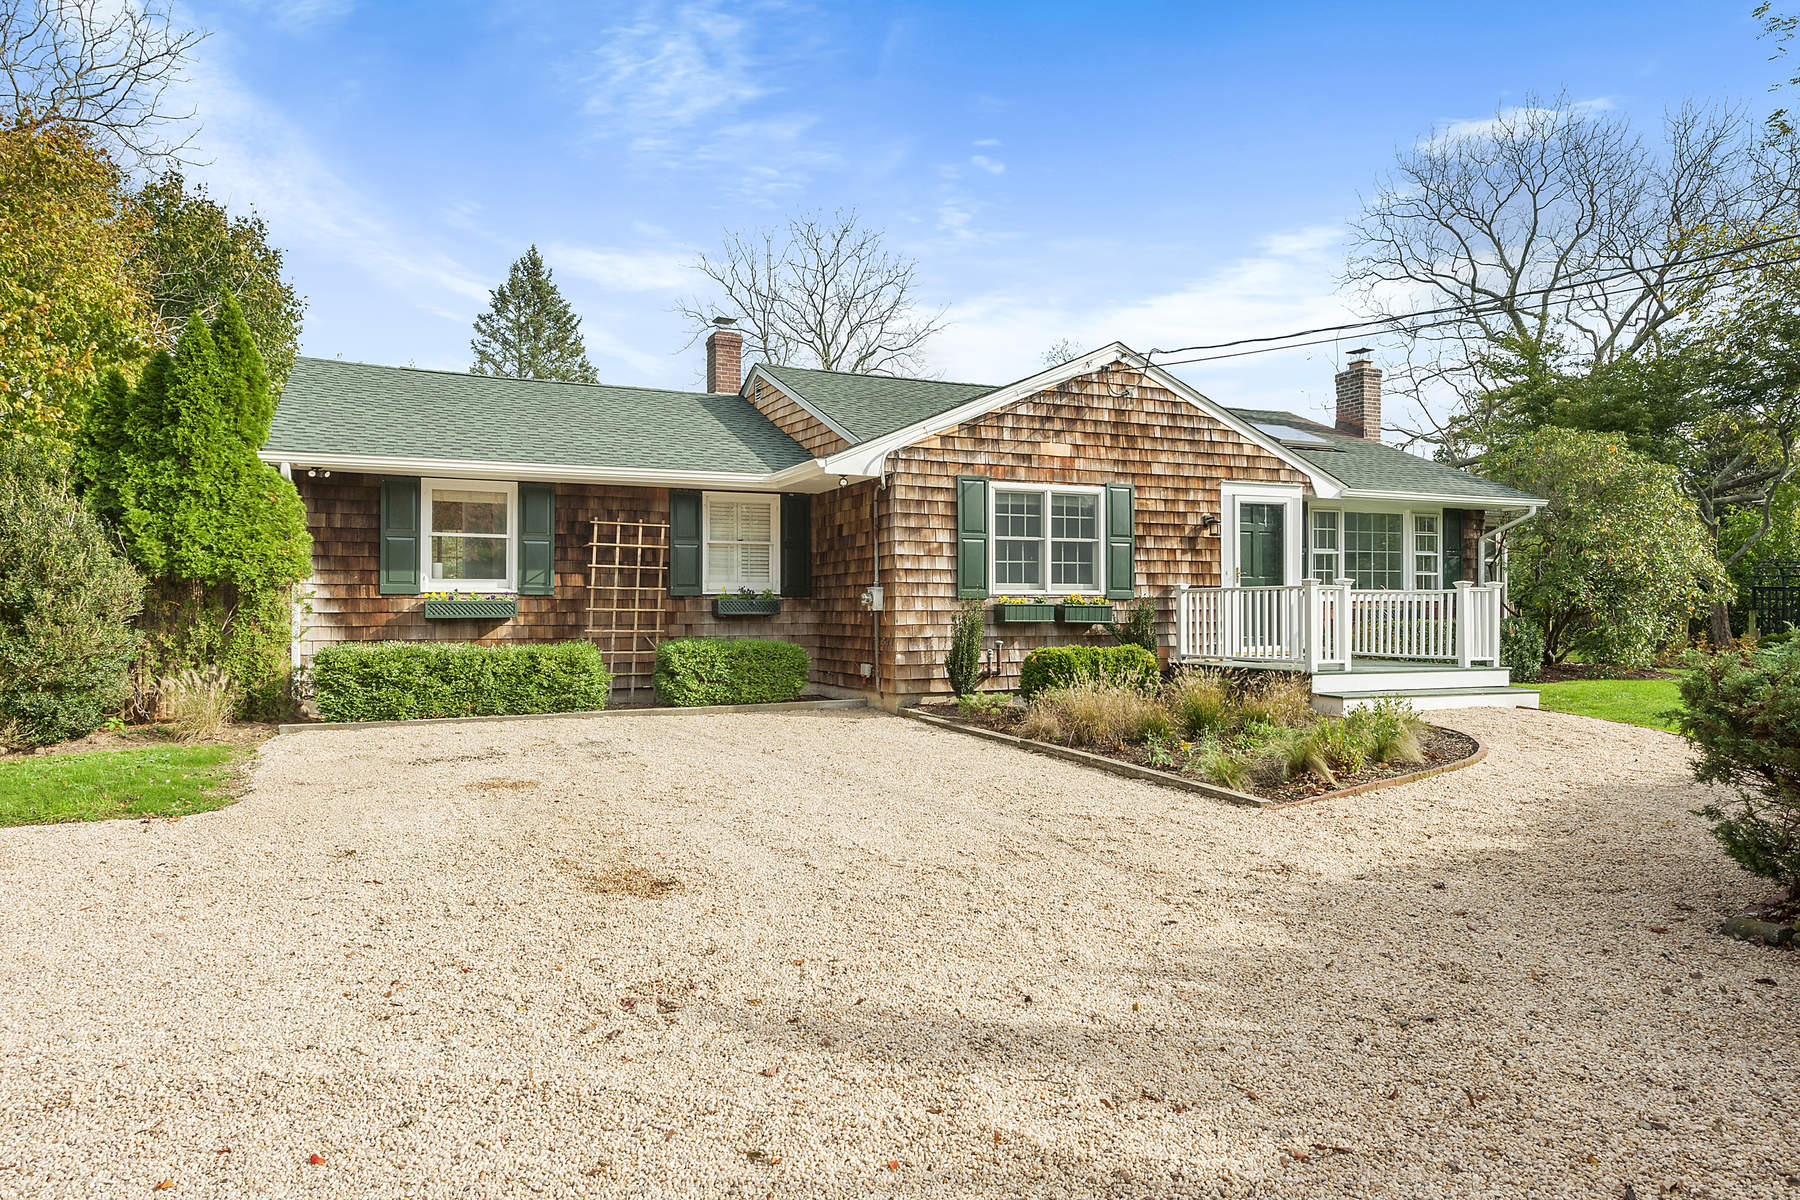 Single Family Home for Sale at Water Mill South Newly Renovated 158 Cobb Road, Water Mill, New York, 11976 United States